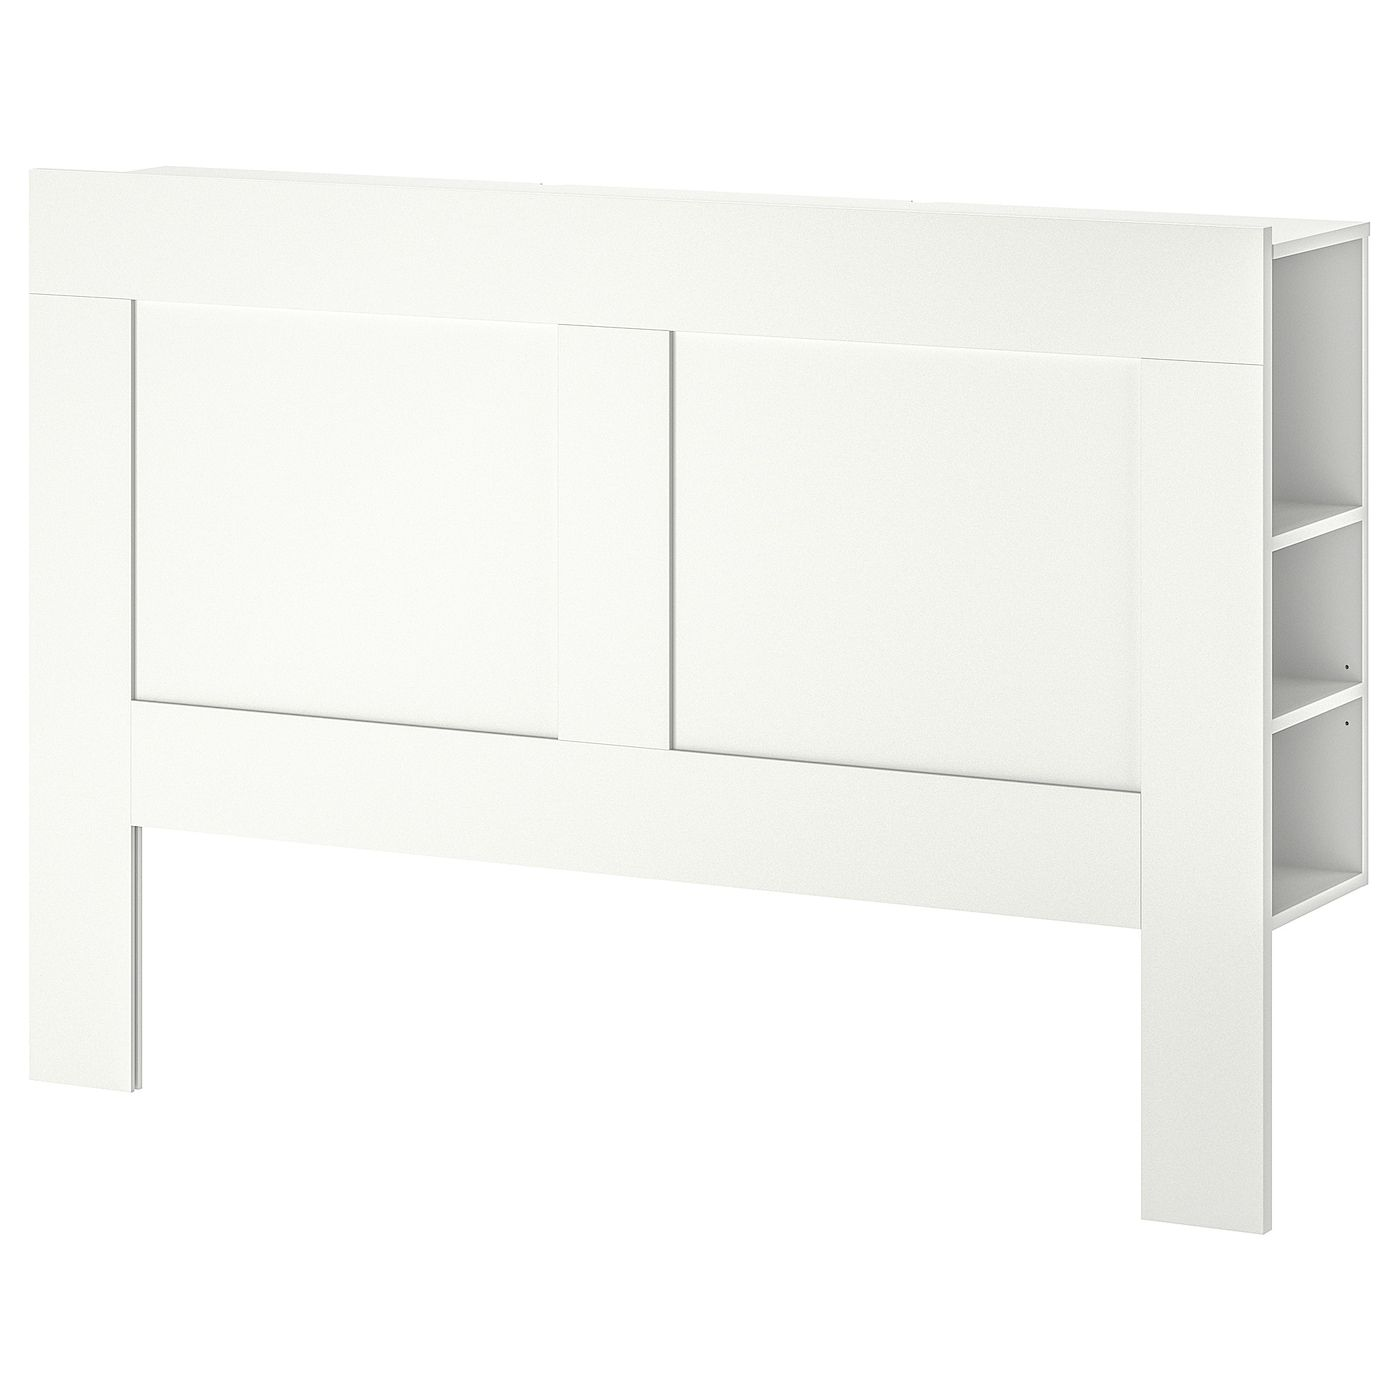 11++ Headboard with storage compartment ideas in 2021